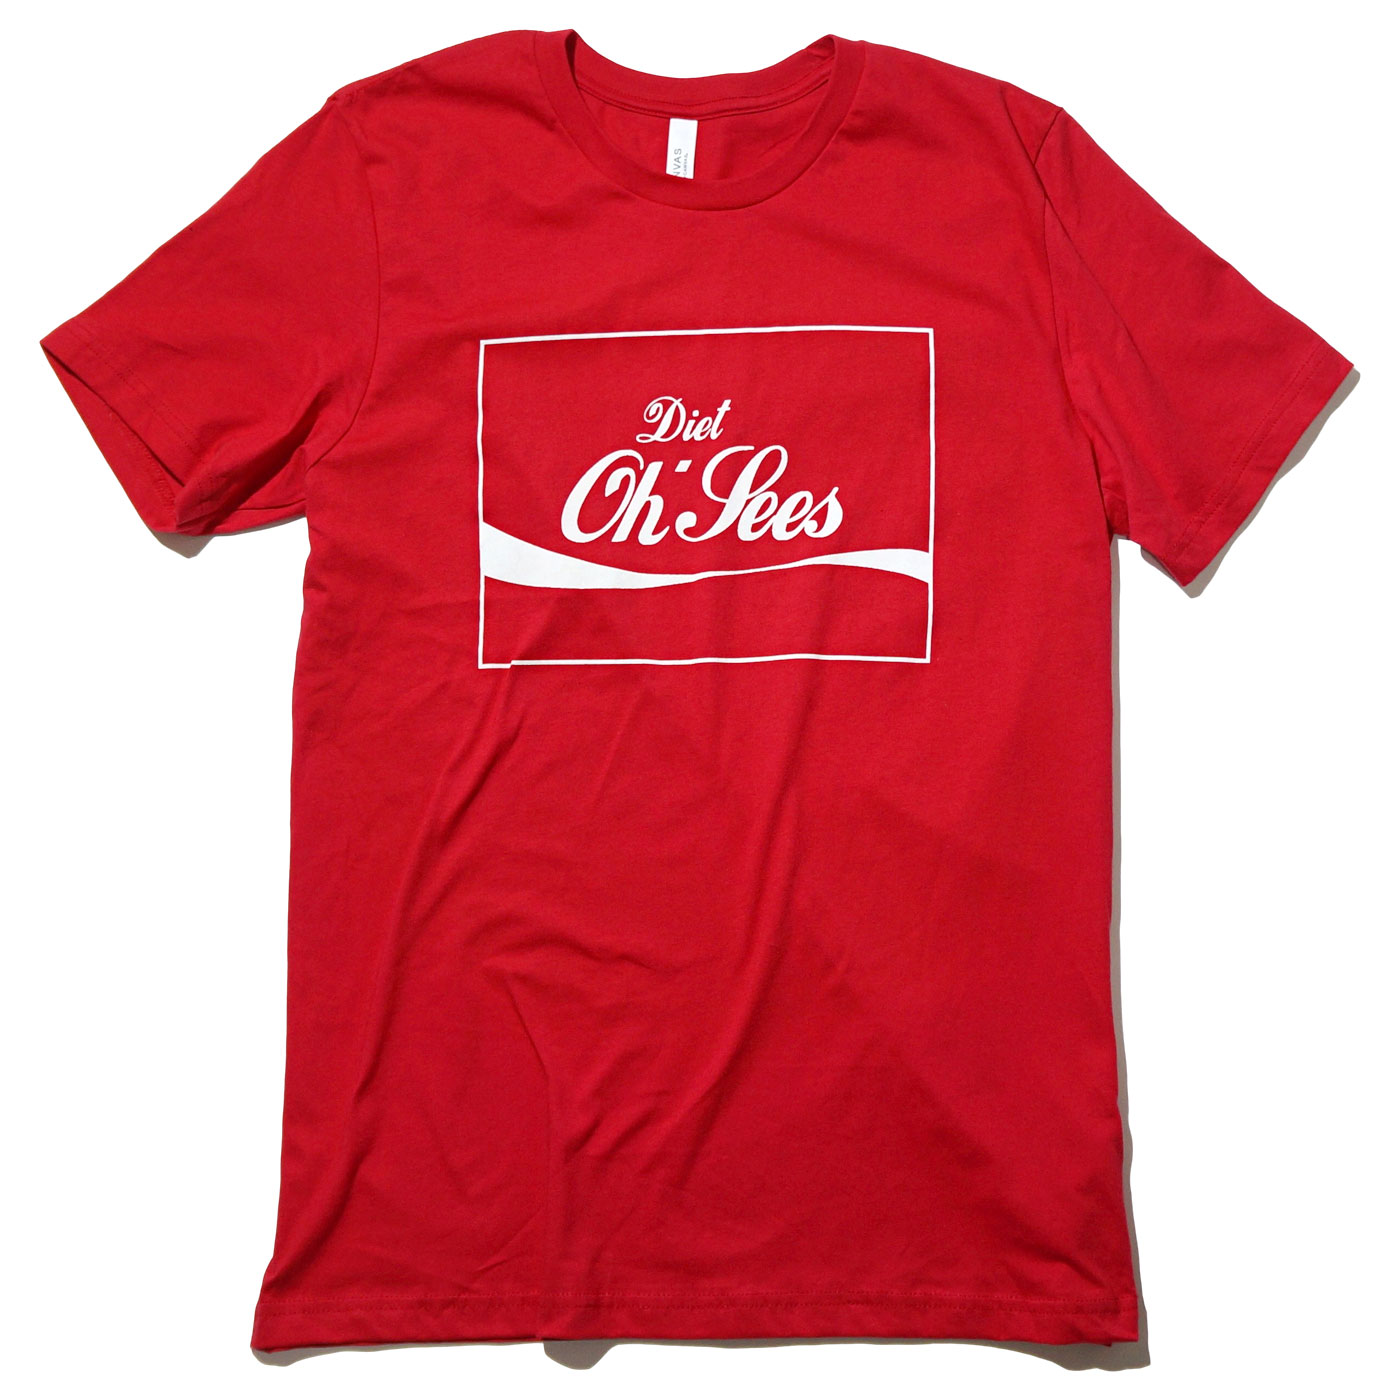 Oh Sees Tシャツ Red Diet Oh Sees tee